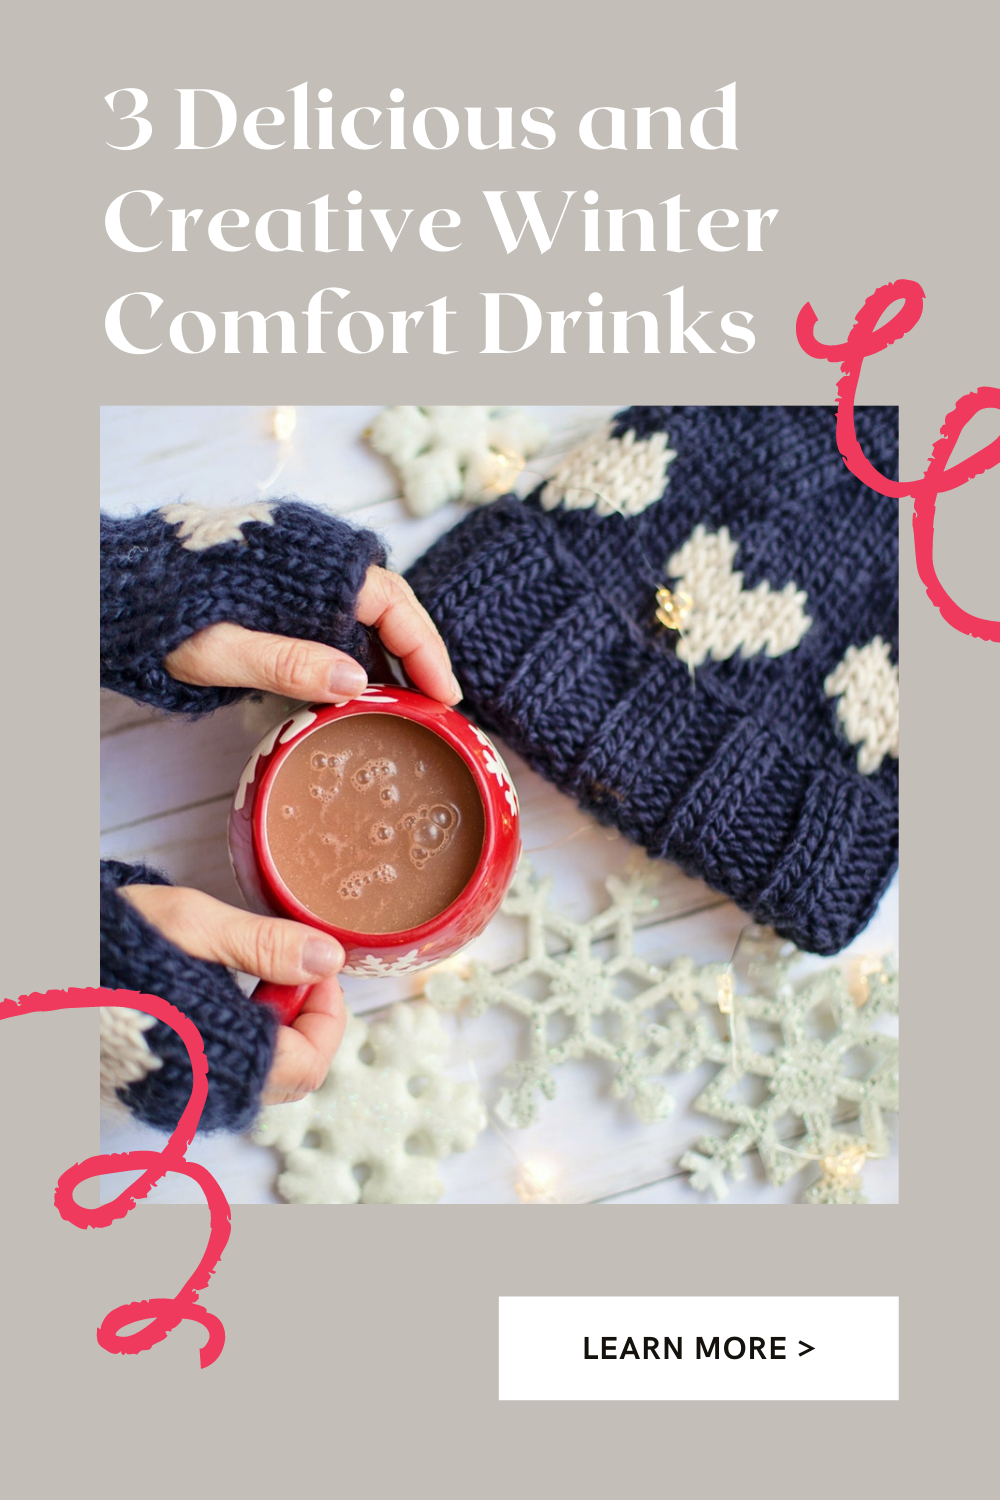 3 Delicious and Creative Winter Comfort Drinks